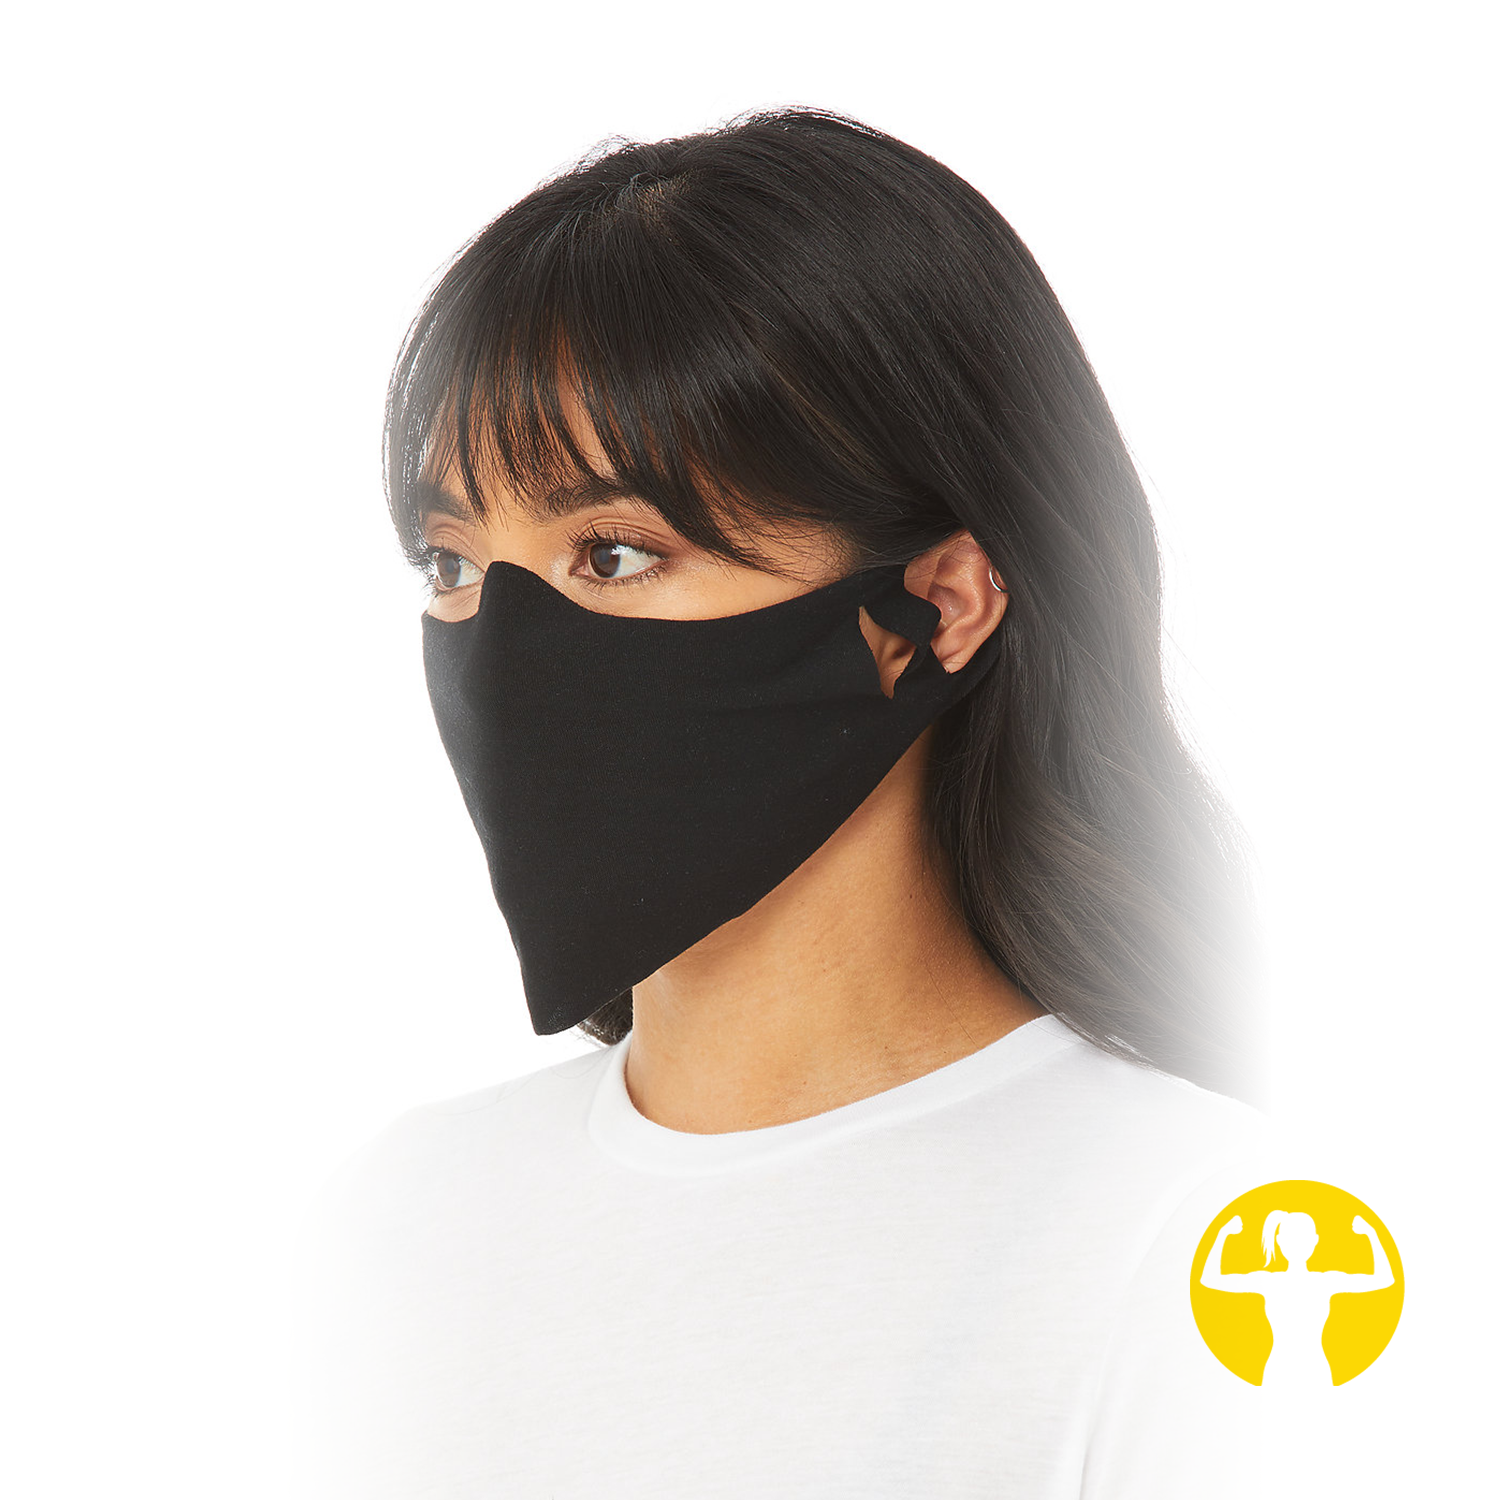 Jersey Daily Face Cover | Light Non-Medical Masks